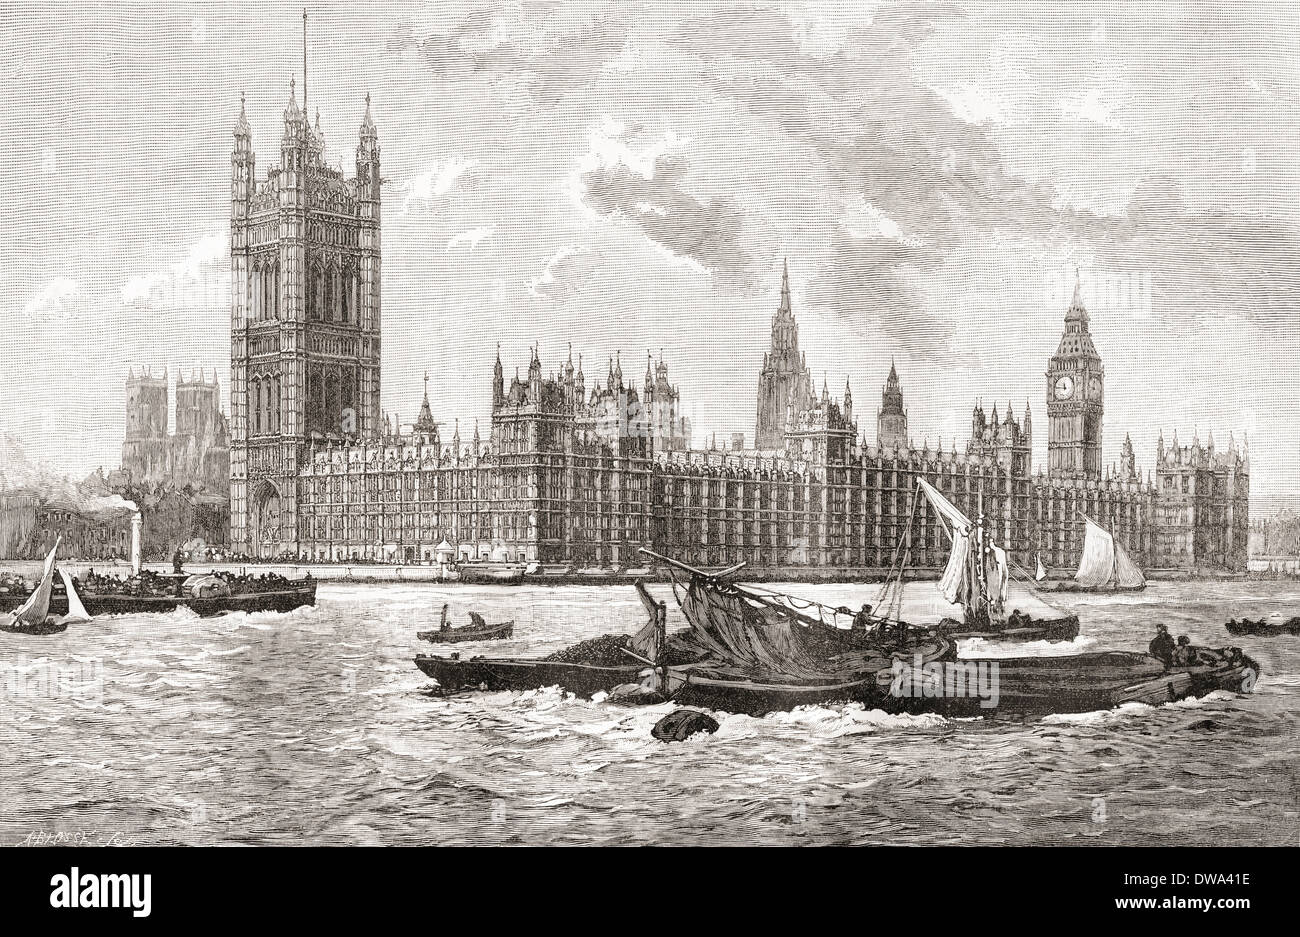 The Houses Of Parliament City Westminster London England In 19th Century